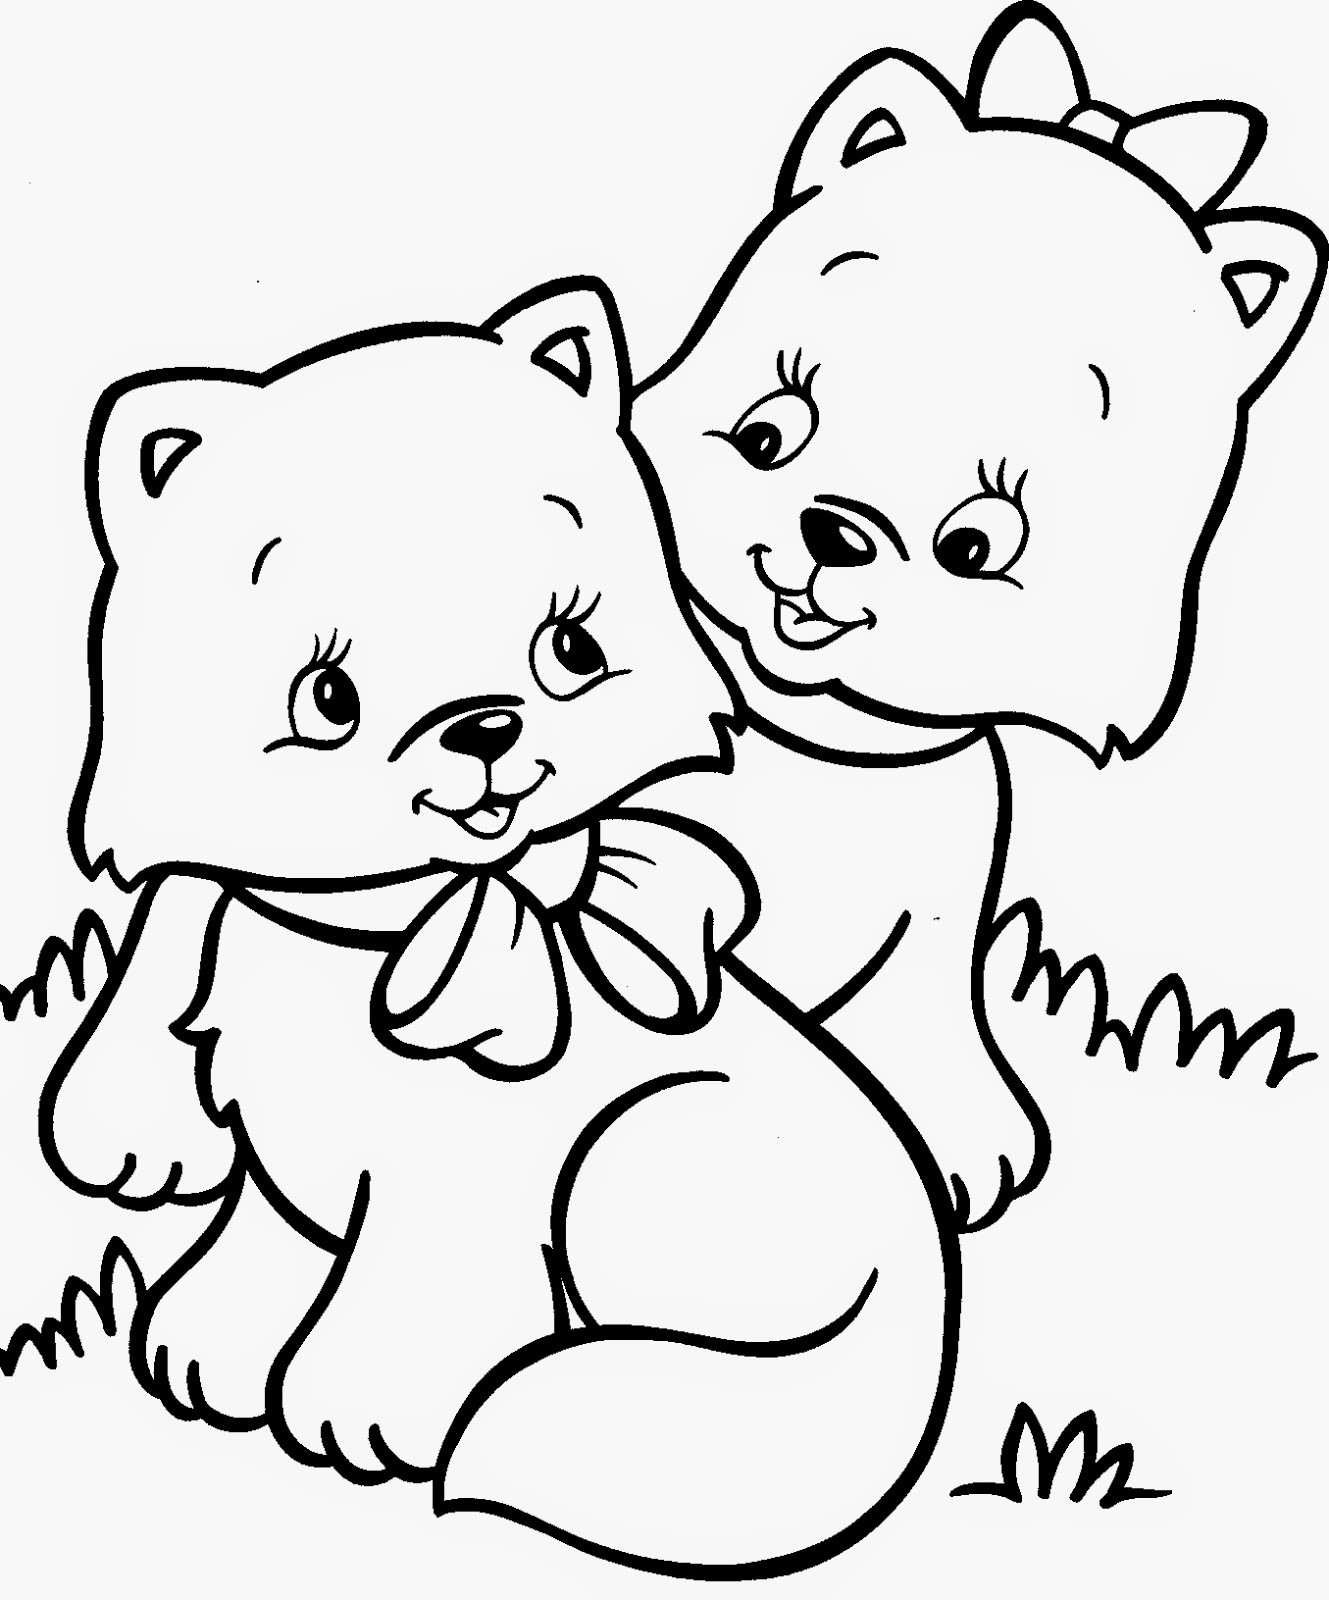 cute cats coloring pages - navishta sketch sweet cute angle cats